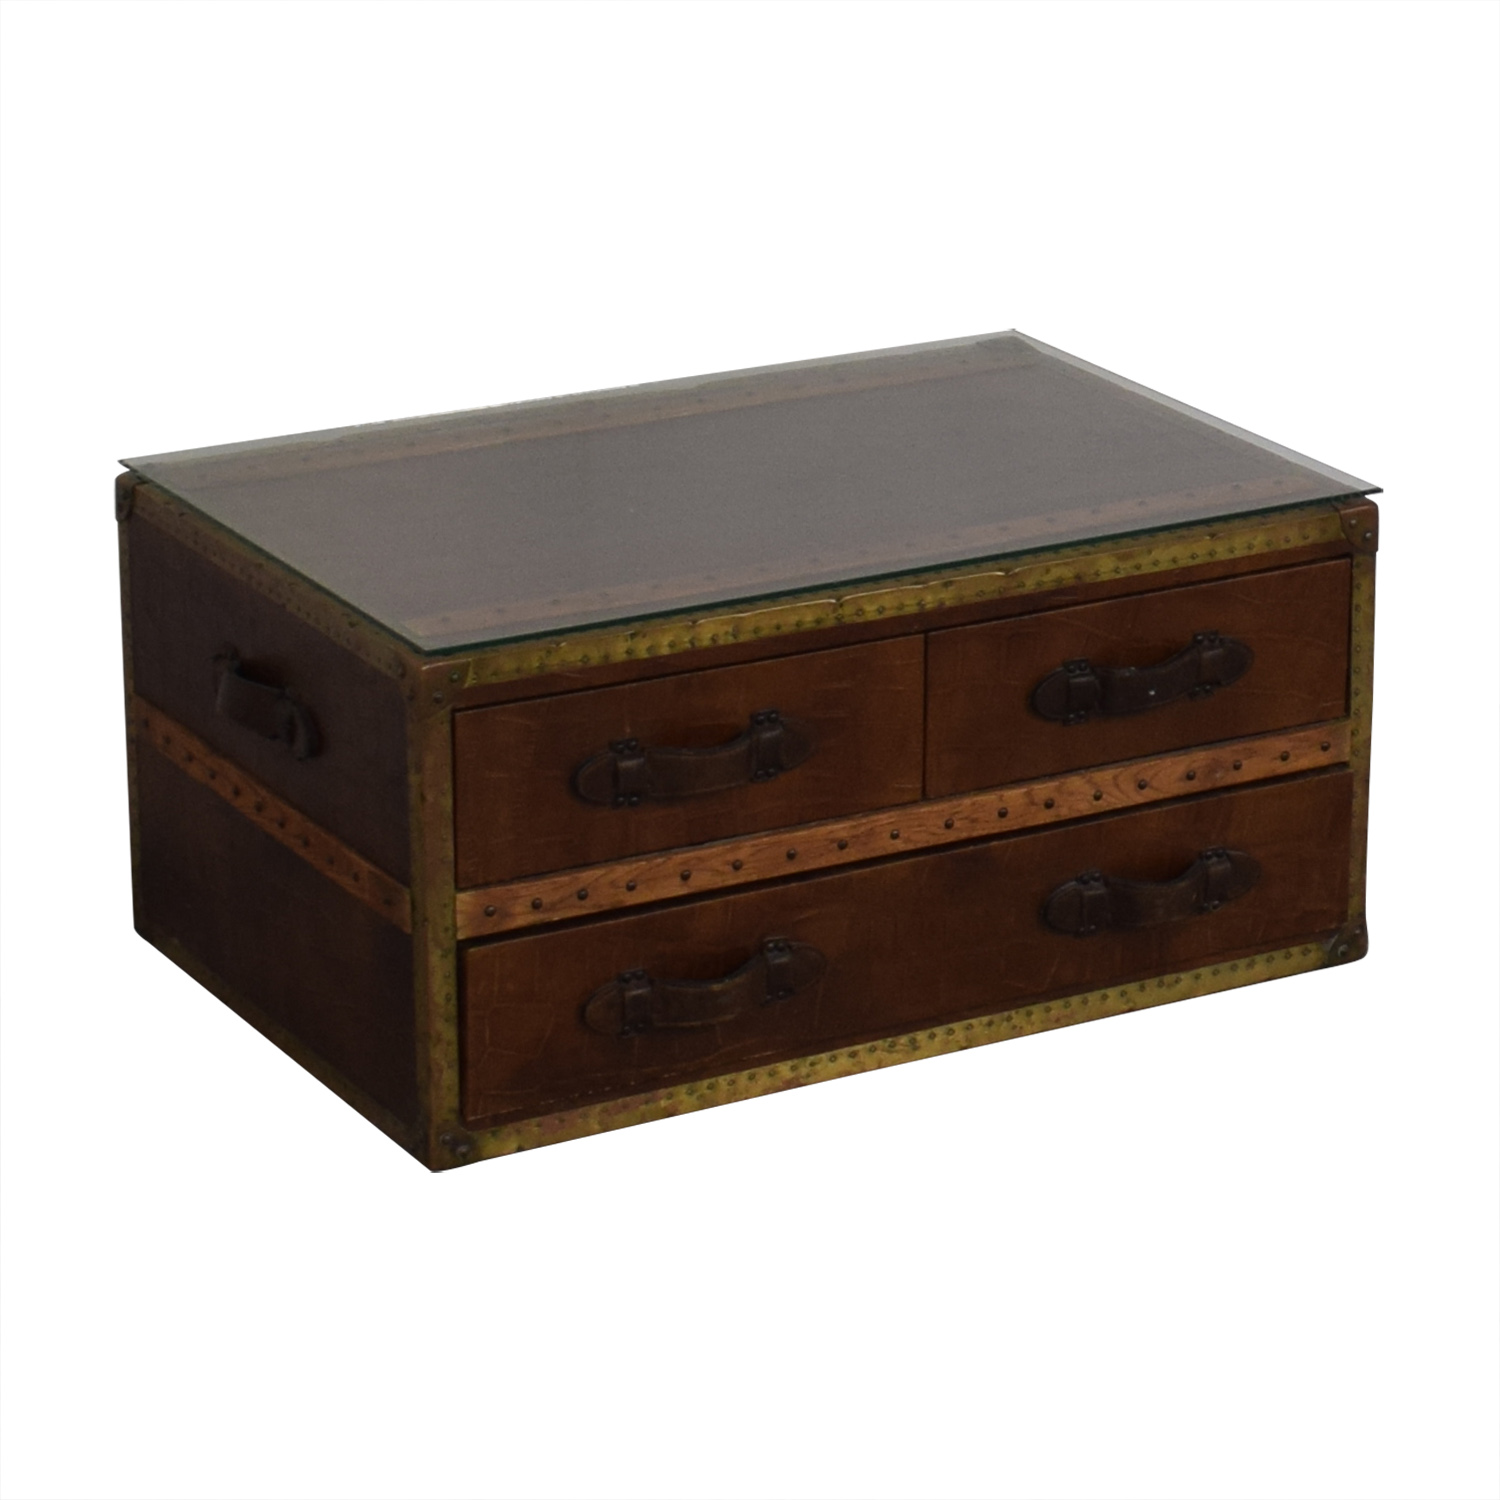 ABC Carpet & Home ABC Carpet & Home Steamer Trunk Coffee Table second hand